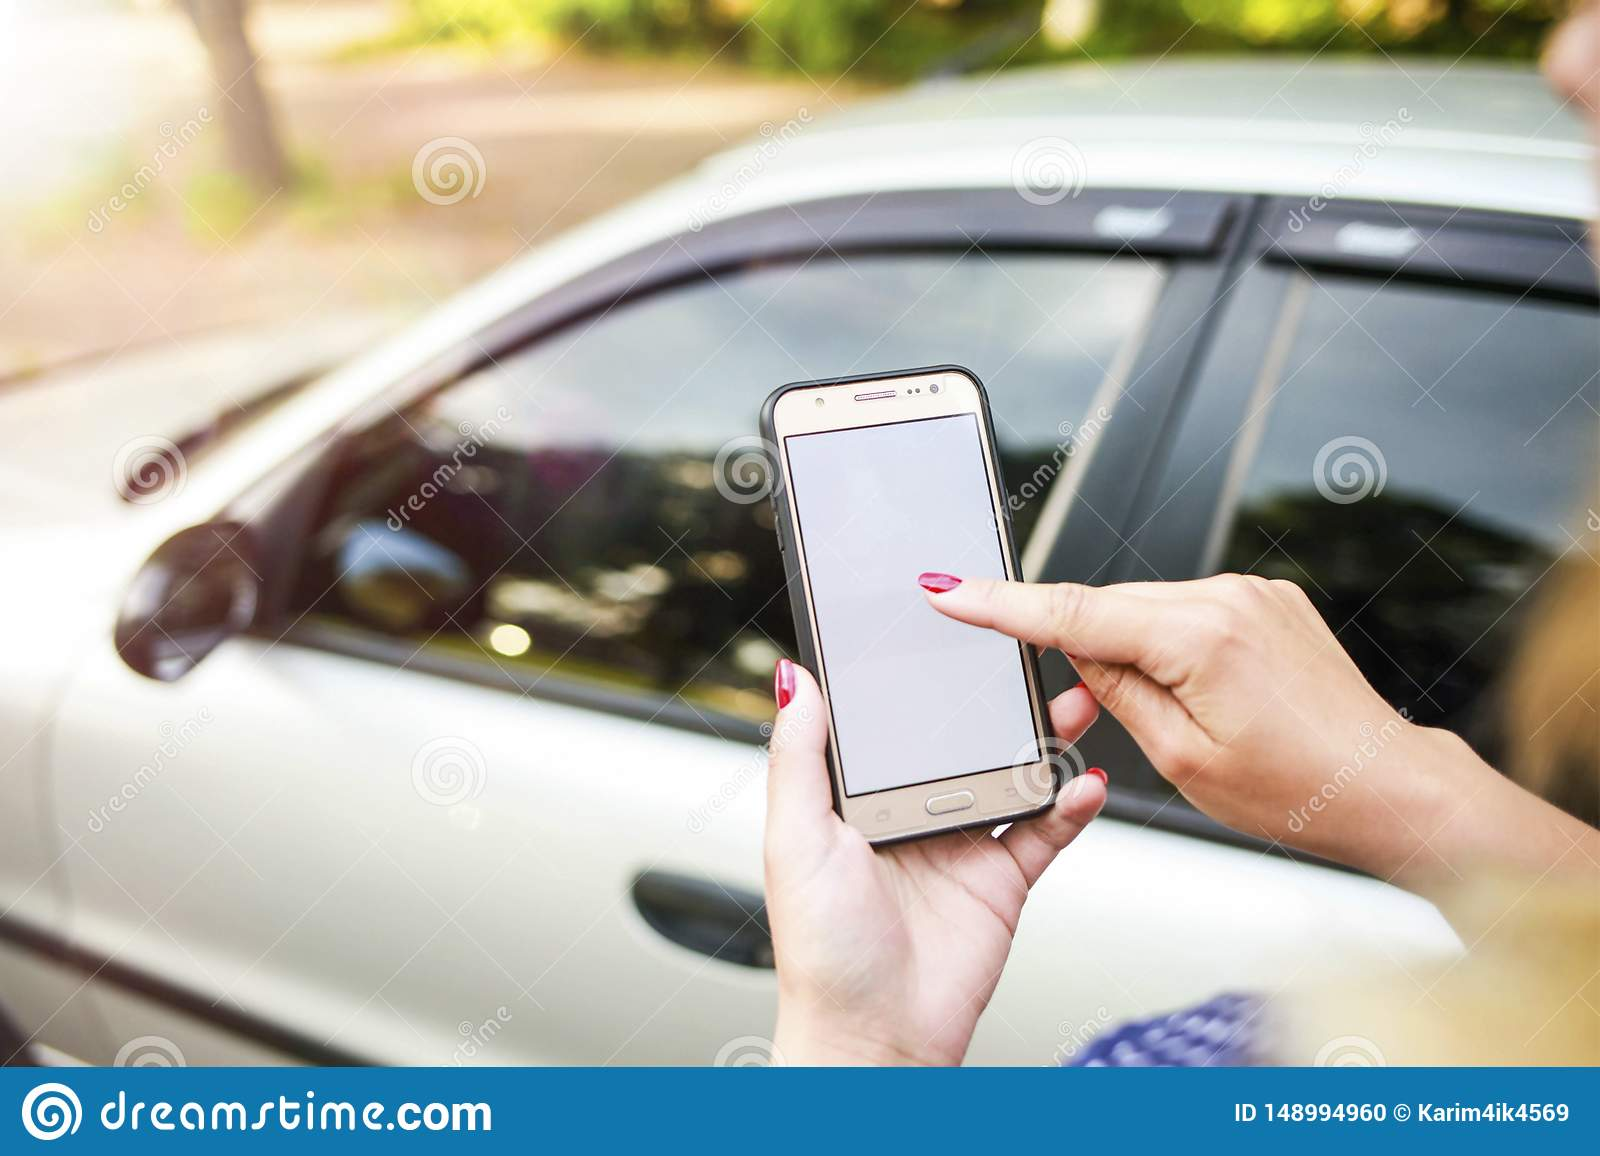 Girl holding a phone in the background of the car. Theme car rental using phone car sharing